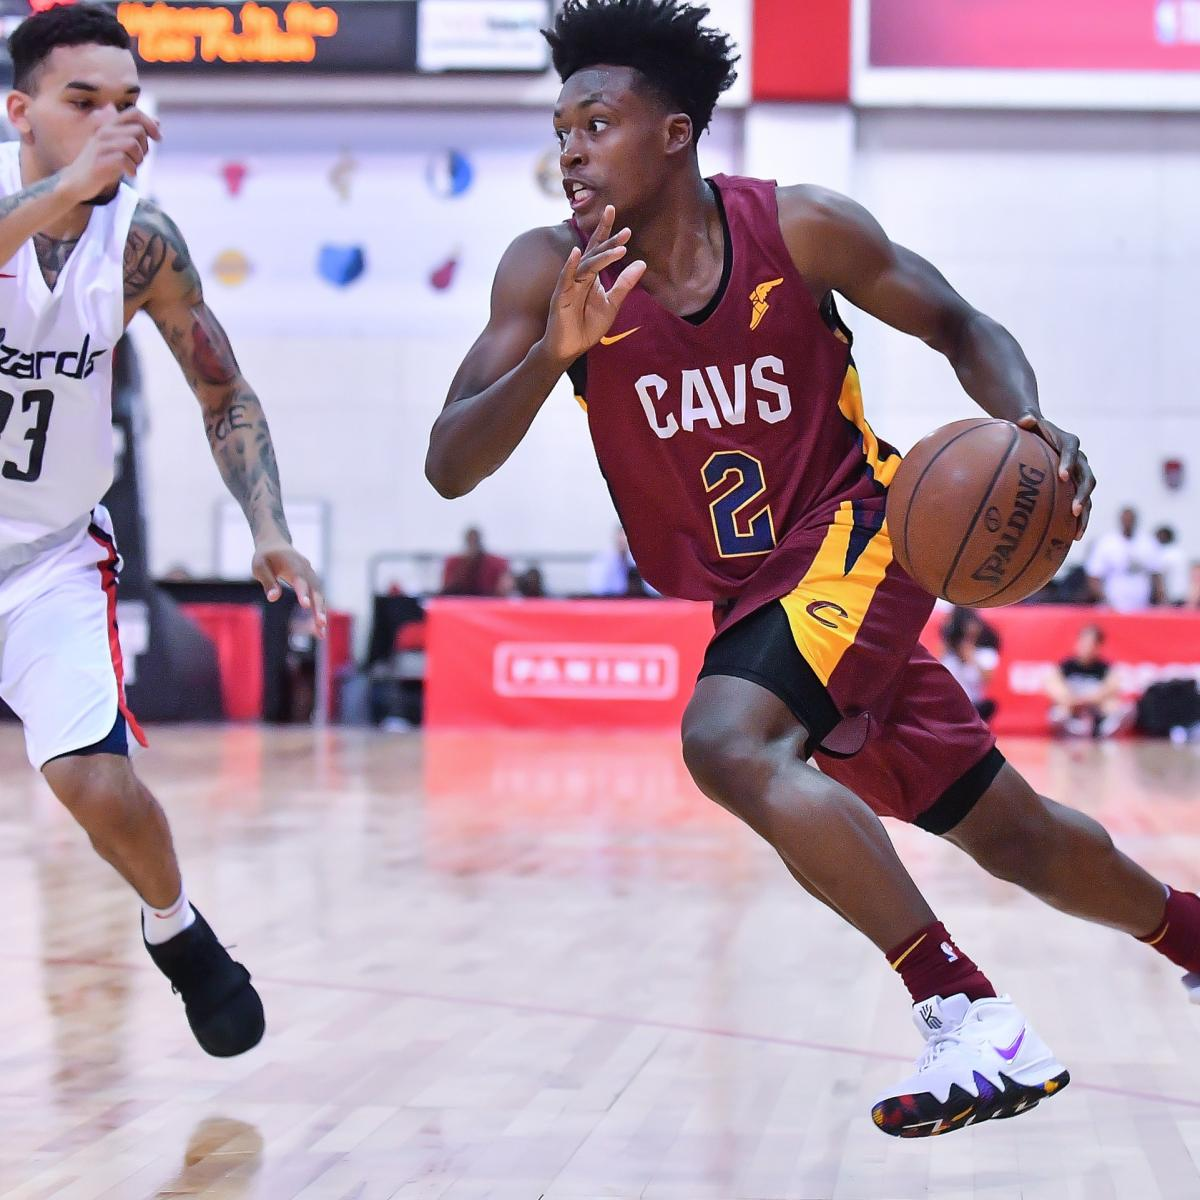 NBA Summer League 2018: Monday Schedule, Latest Las Vegas Standings and Stats